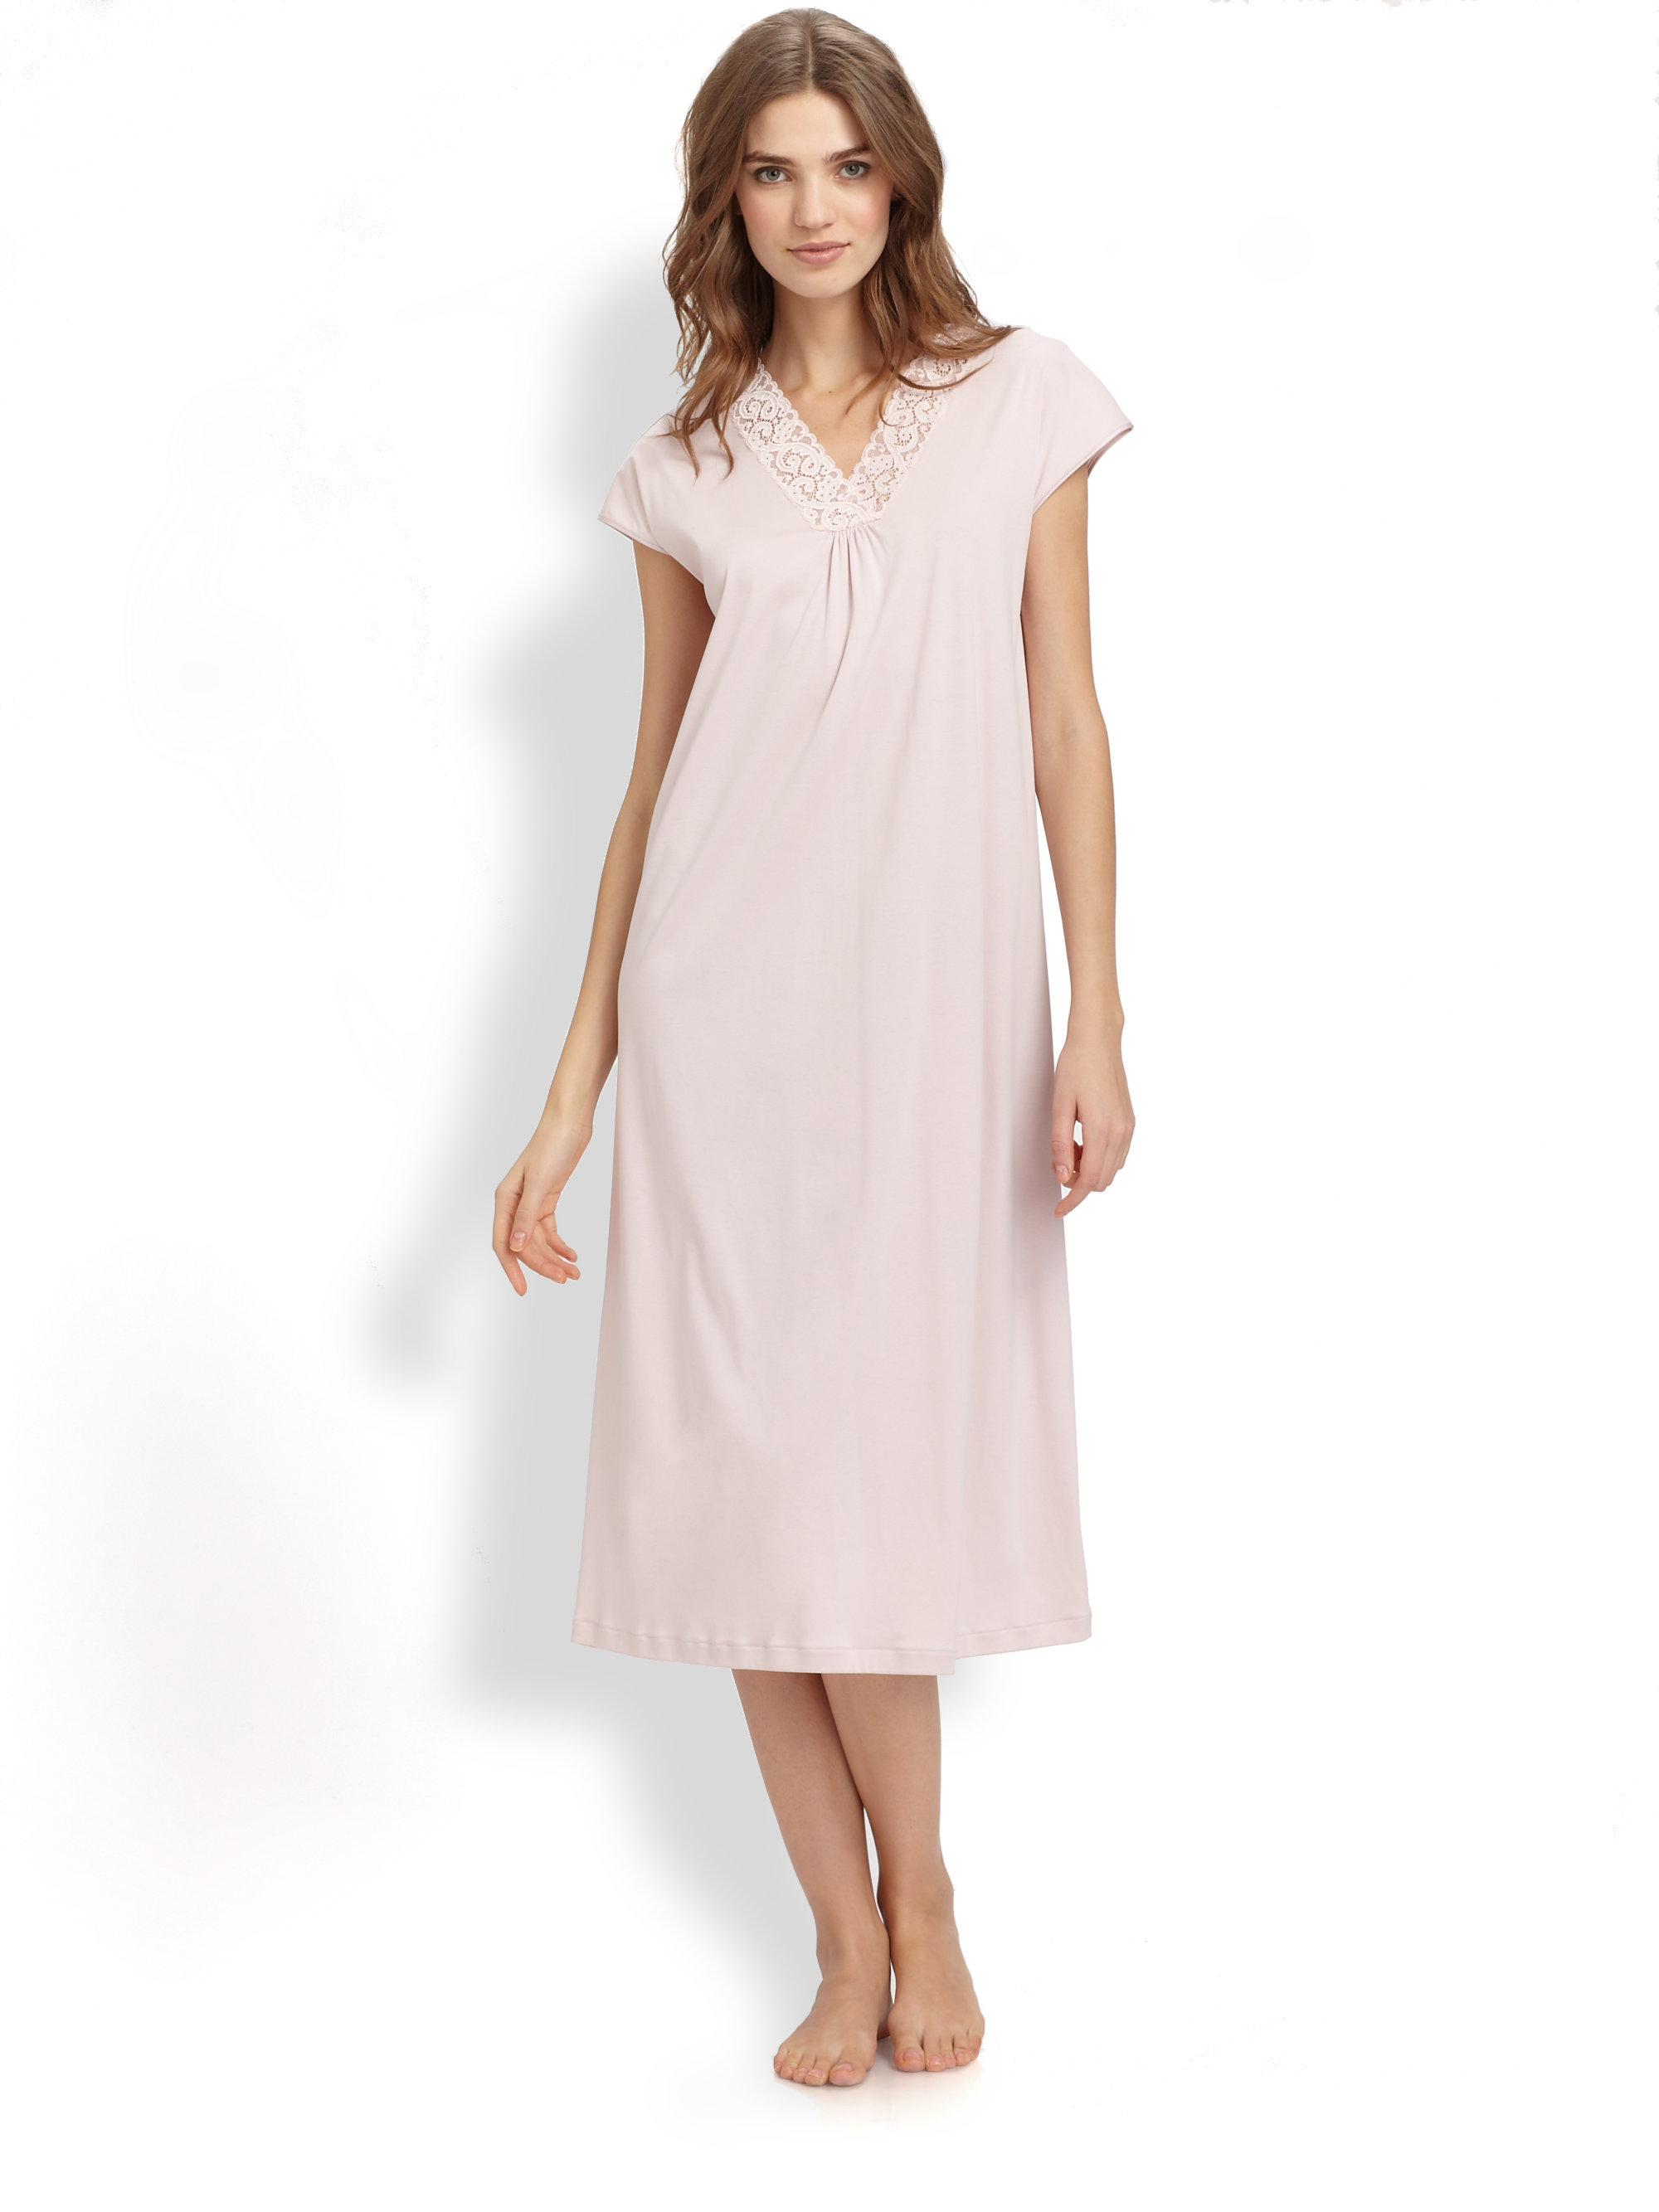 Knit Long Sleeve Cotton Nightgowns For Women